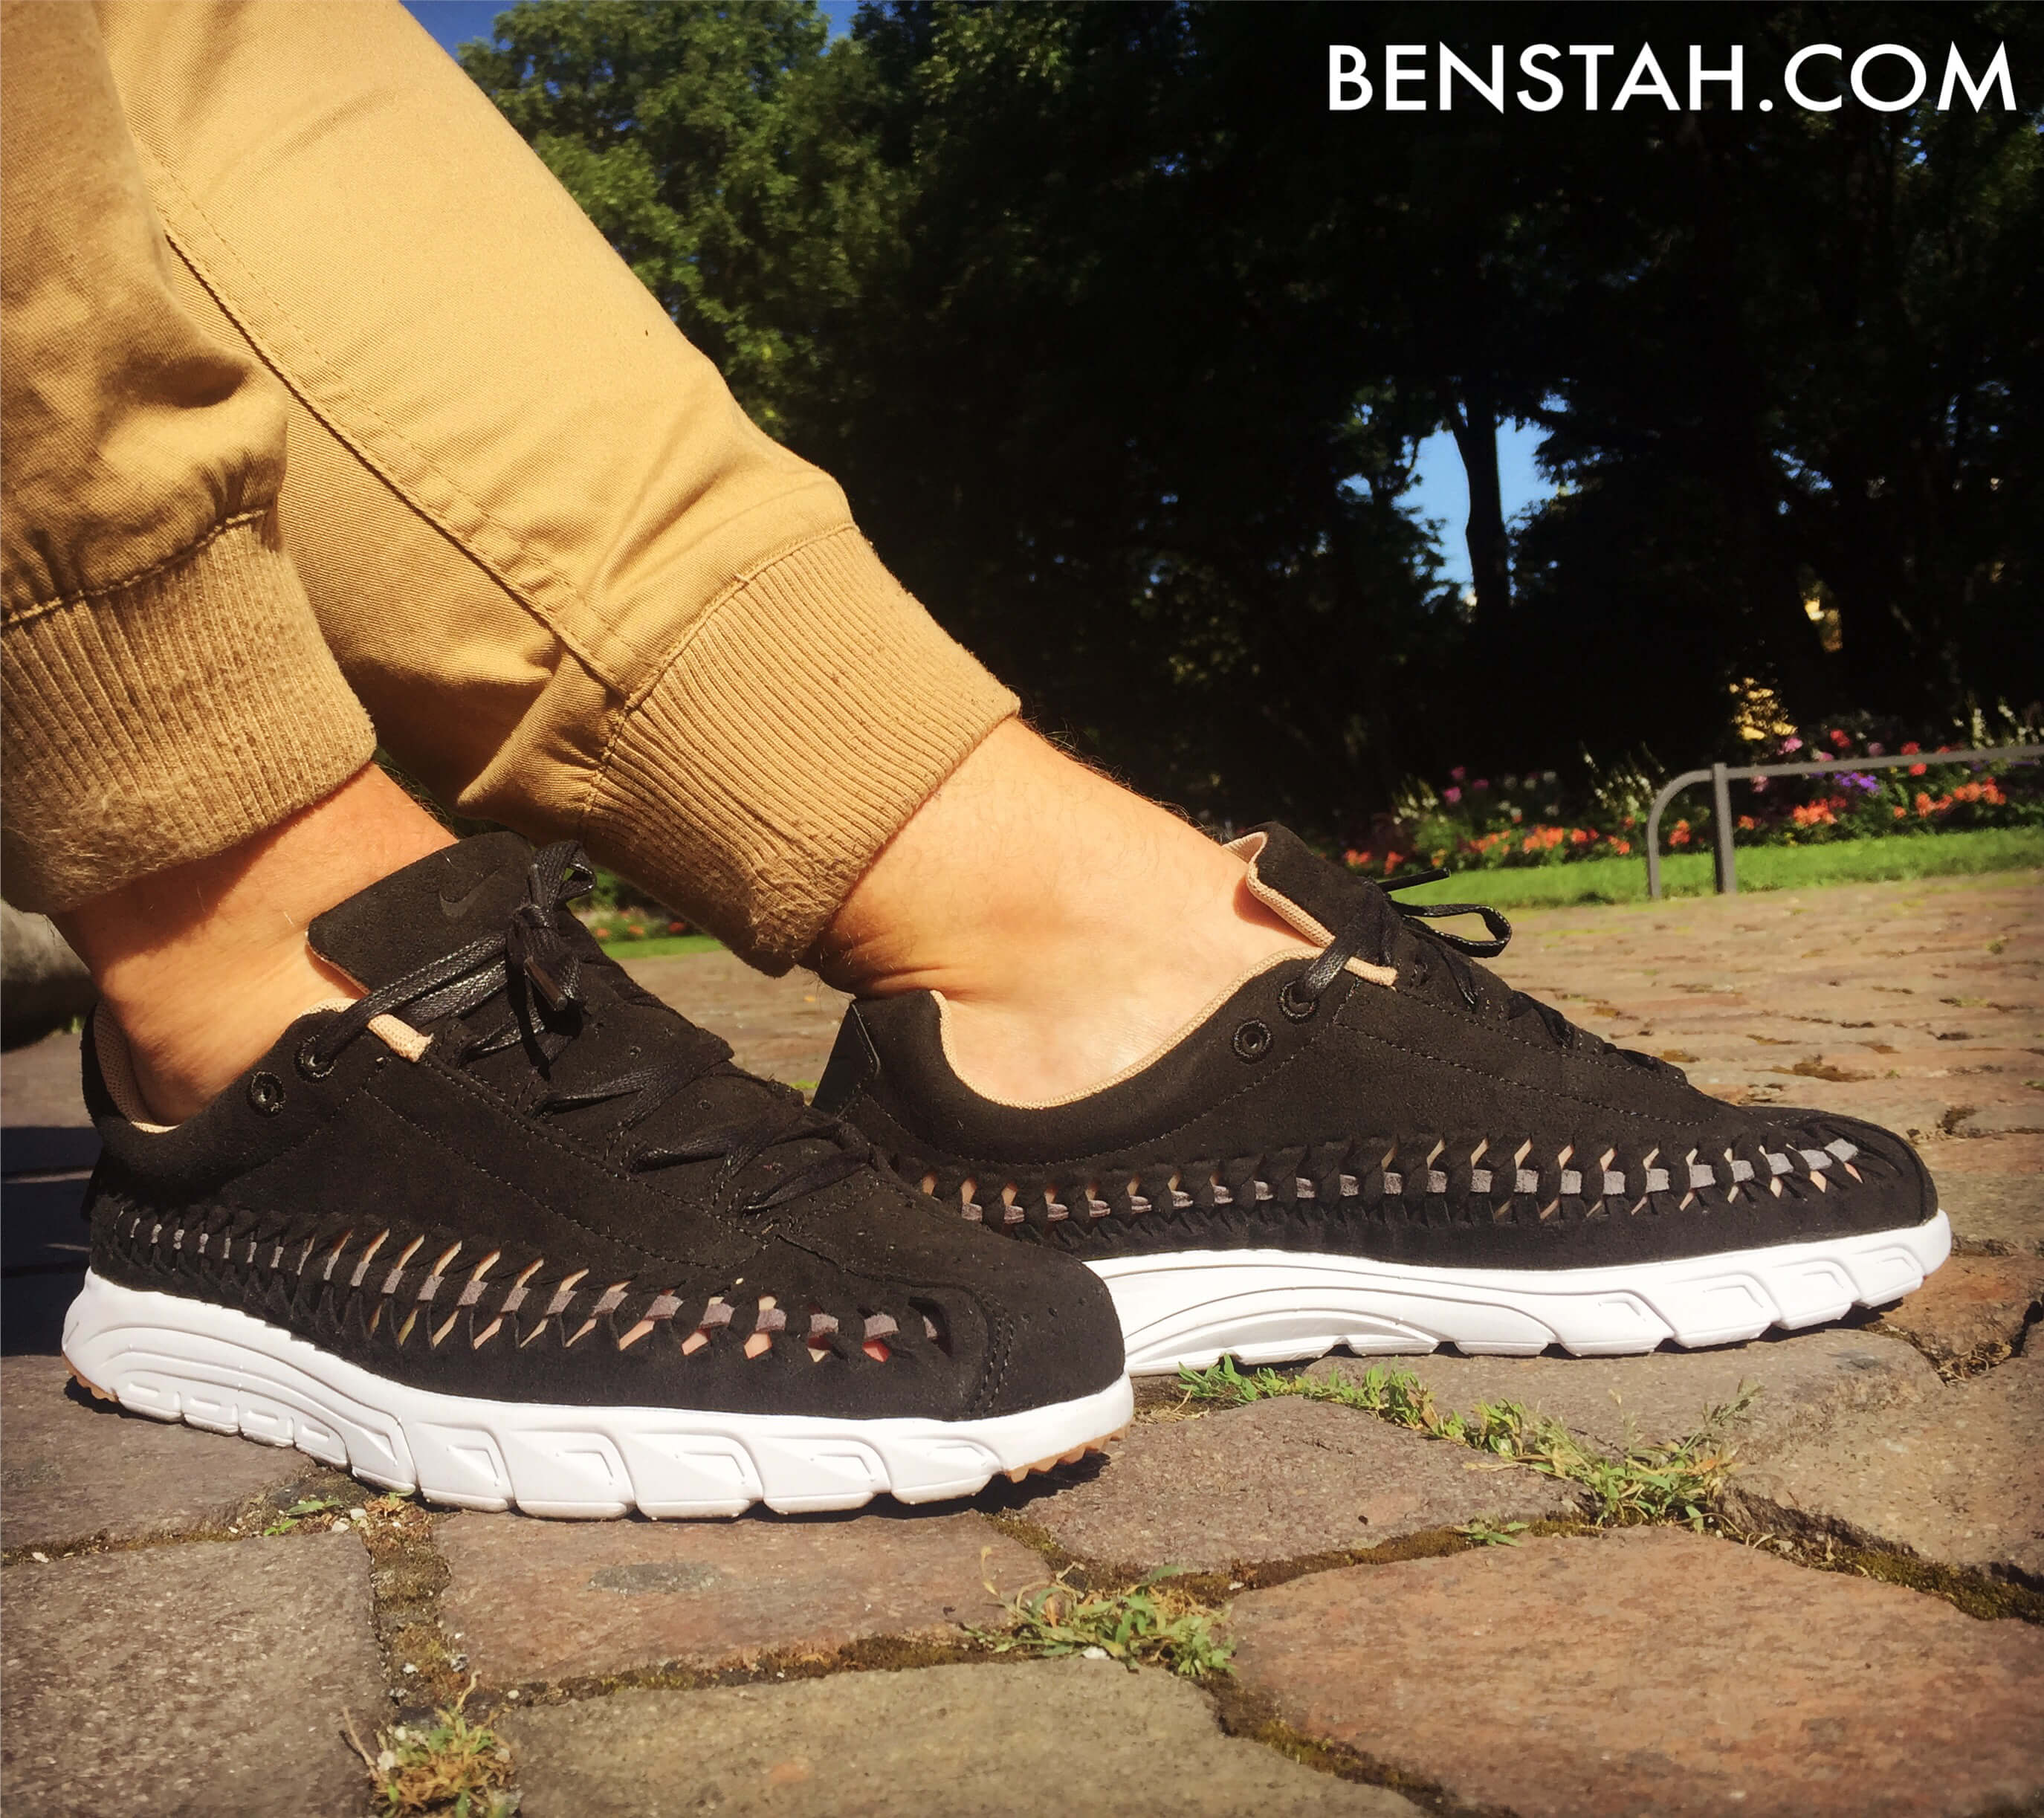 nike-mayfly-woven-side-view-benstah-onfeet